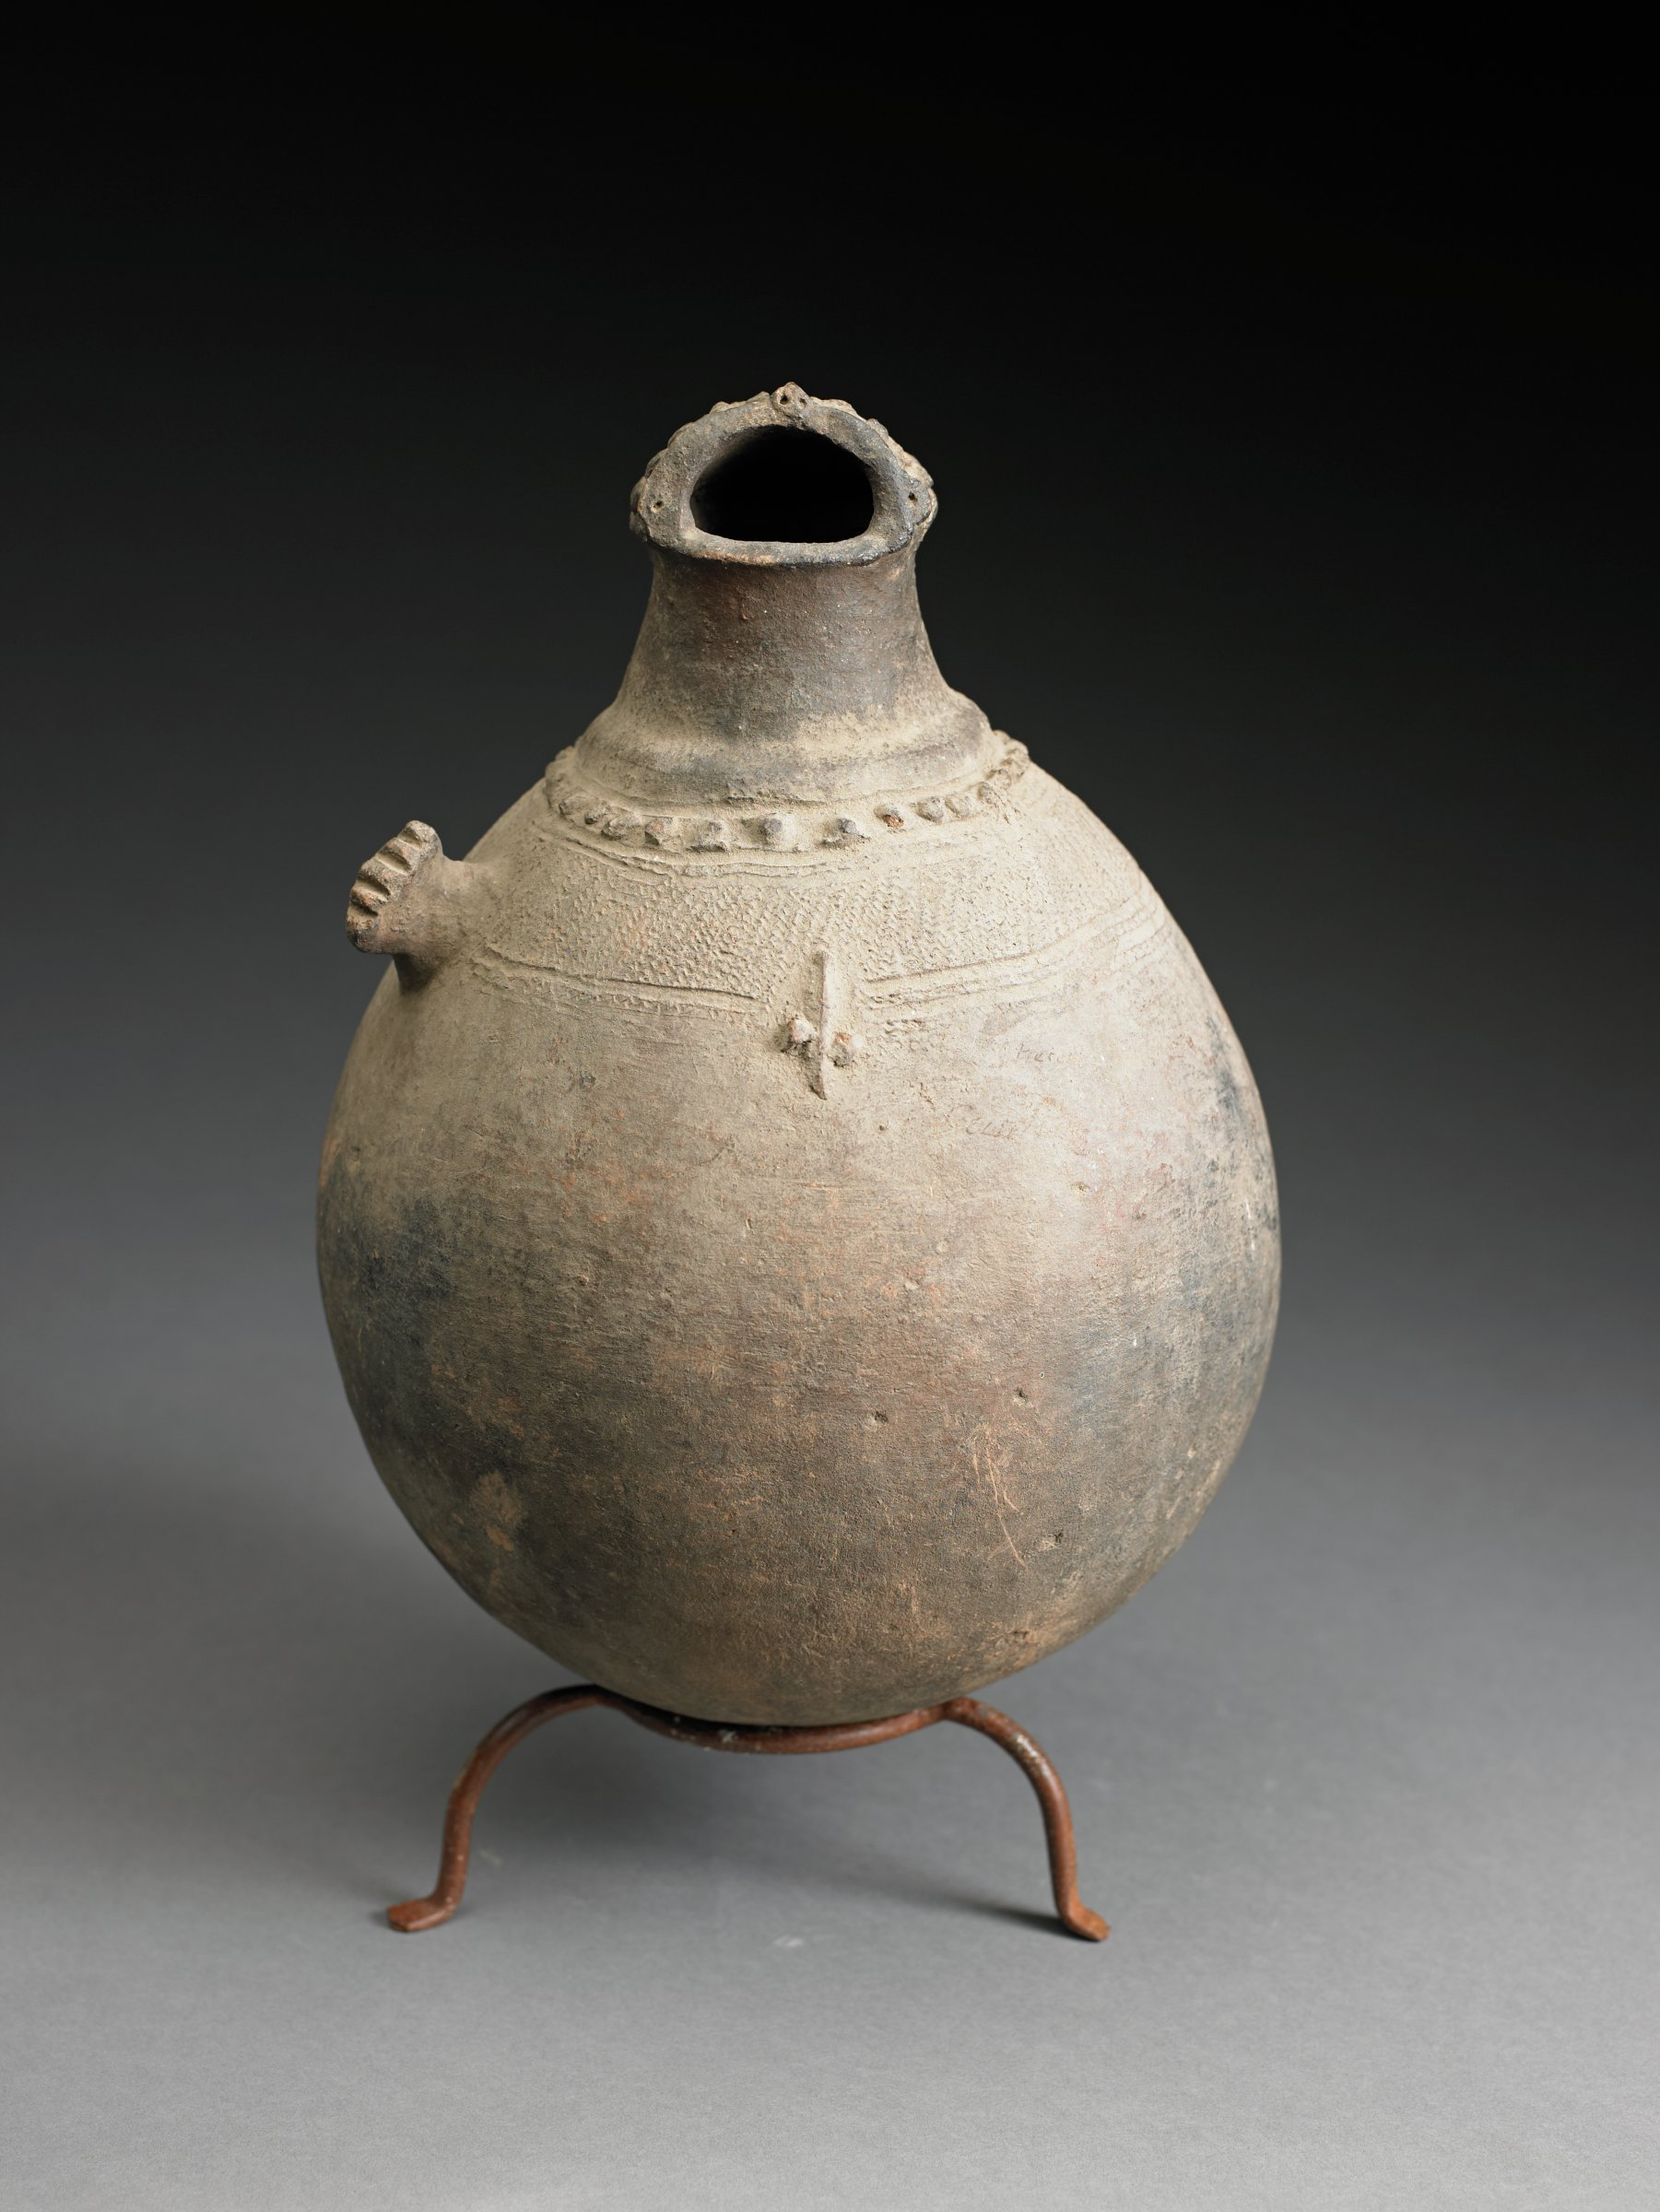 Ovoid, figurative vessel has round bottom, neck, and abstract head with wide mouth and bumps on back of head.  Body has single, short arm and raised bumps, possibly genitals.